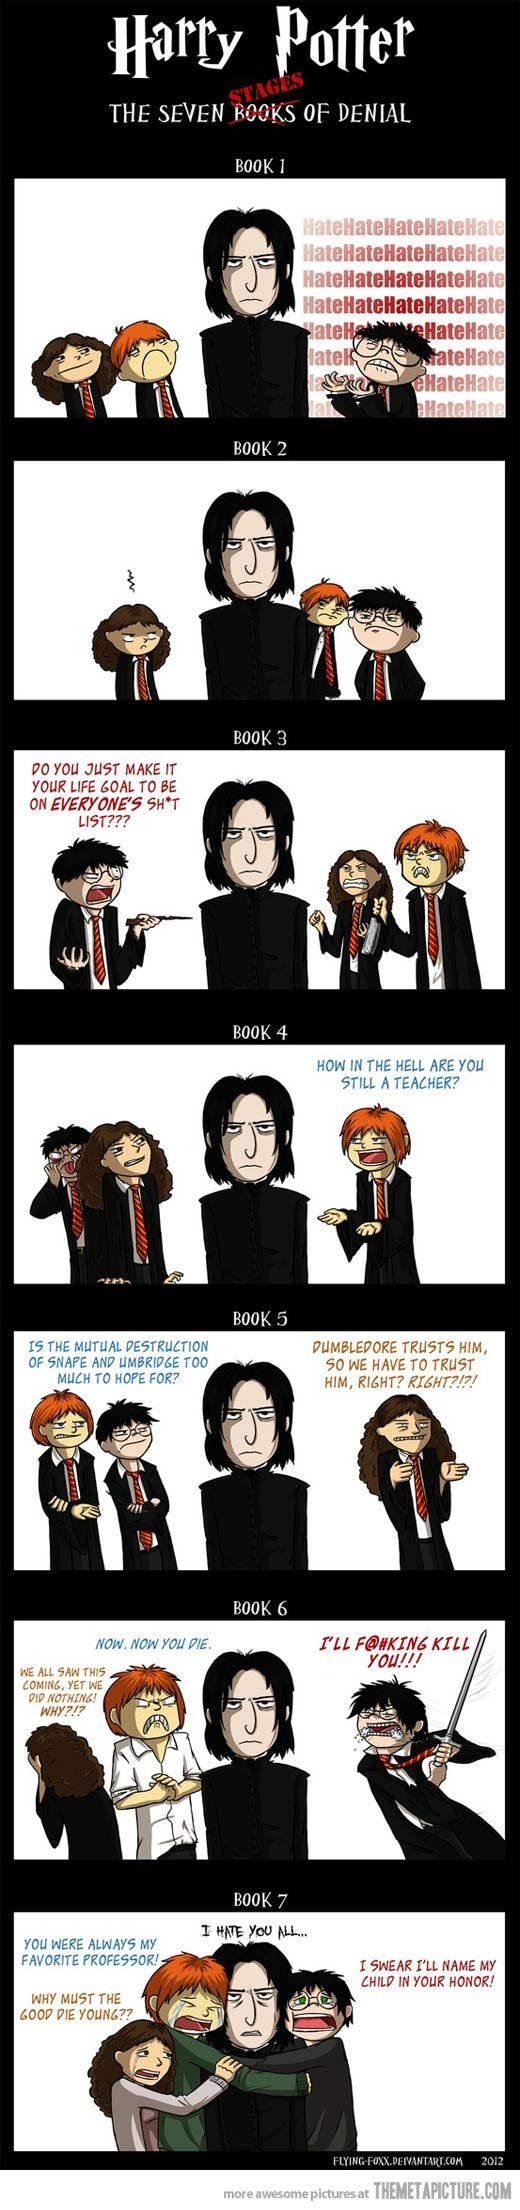 The genius of JK's character development with Snape